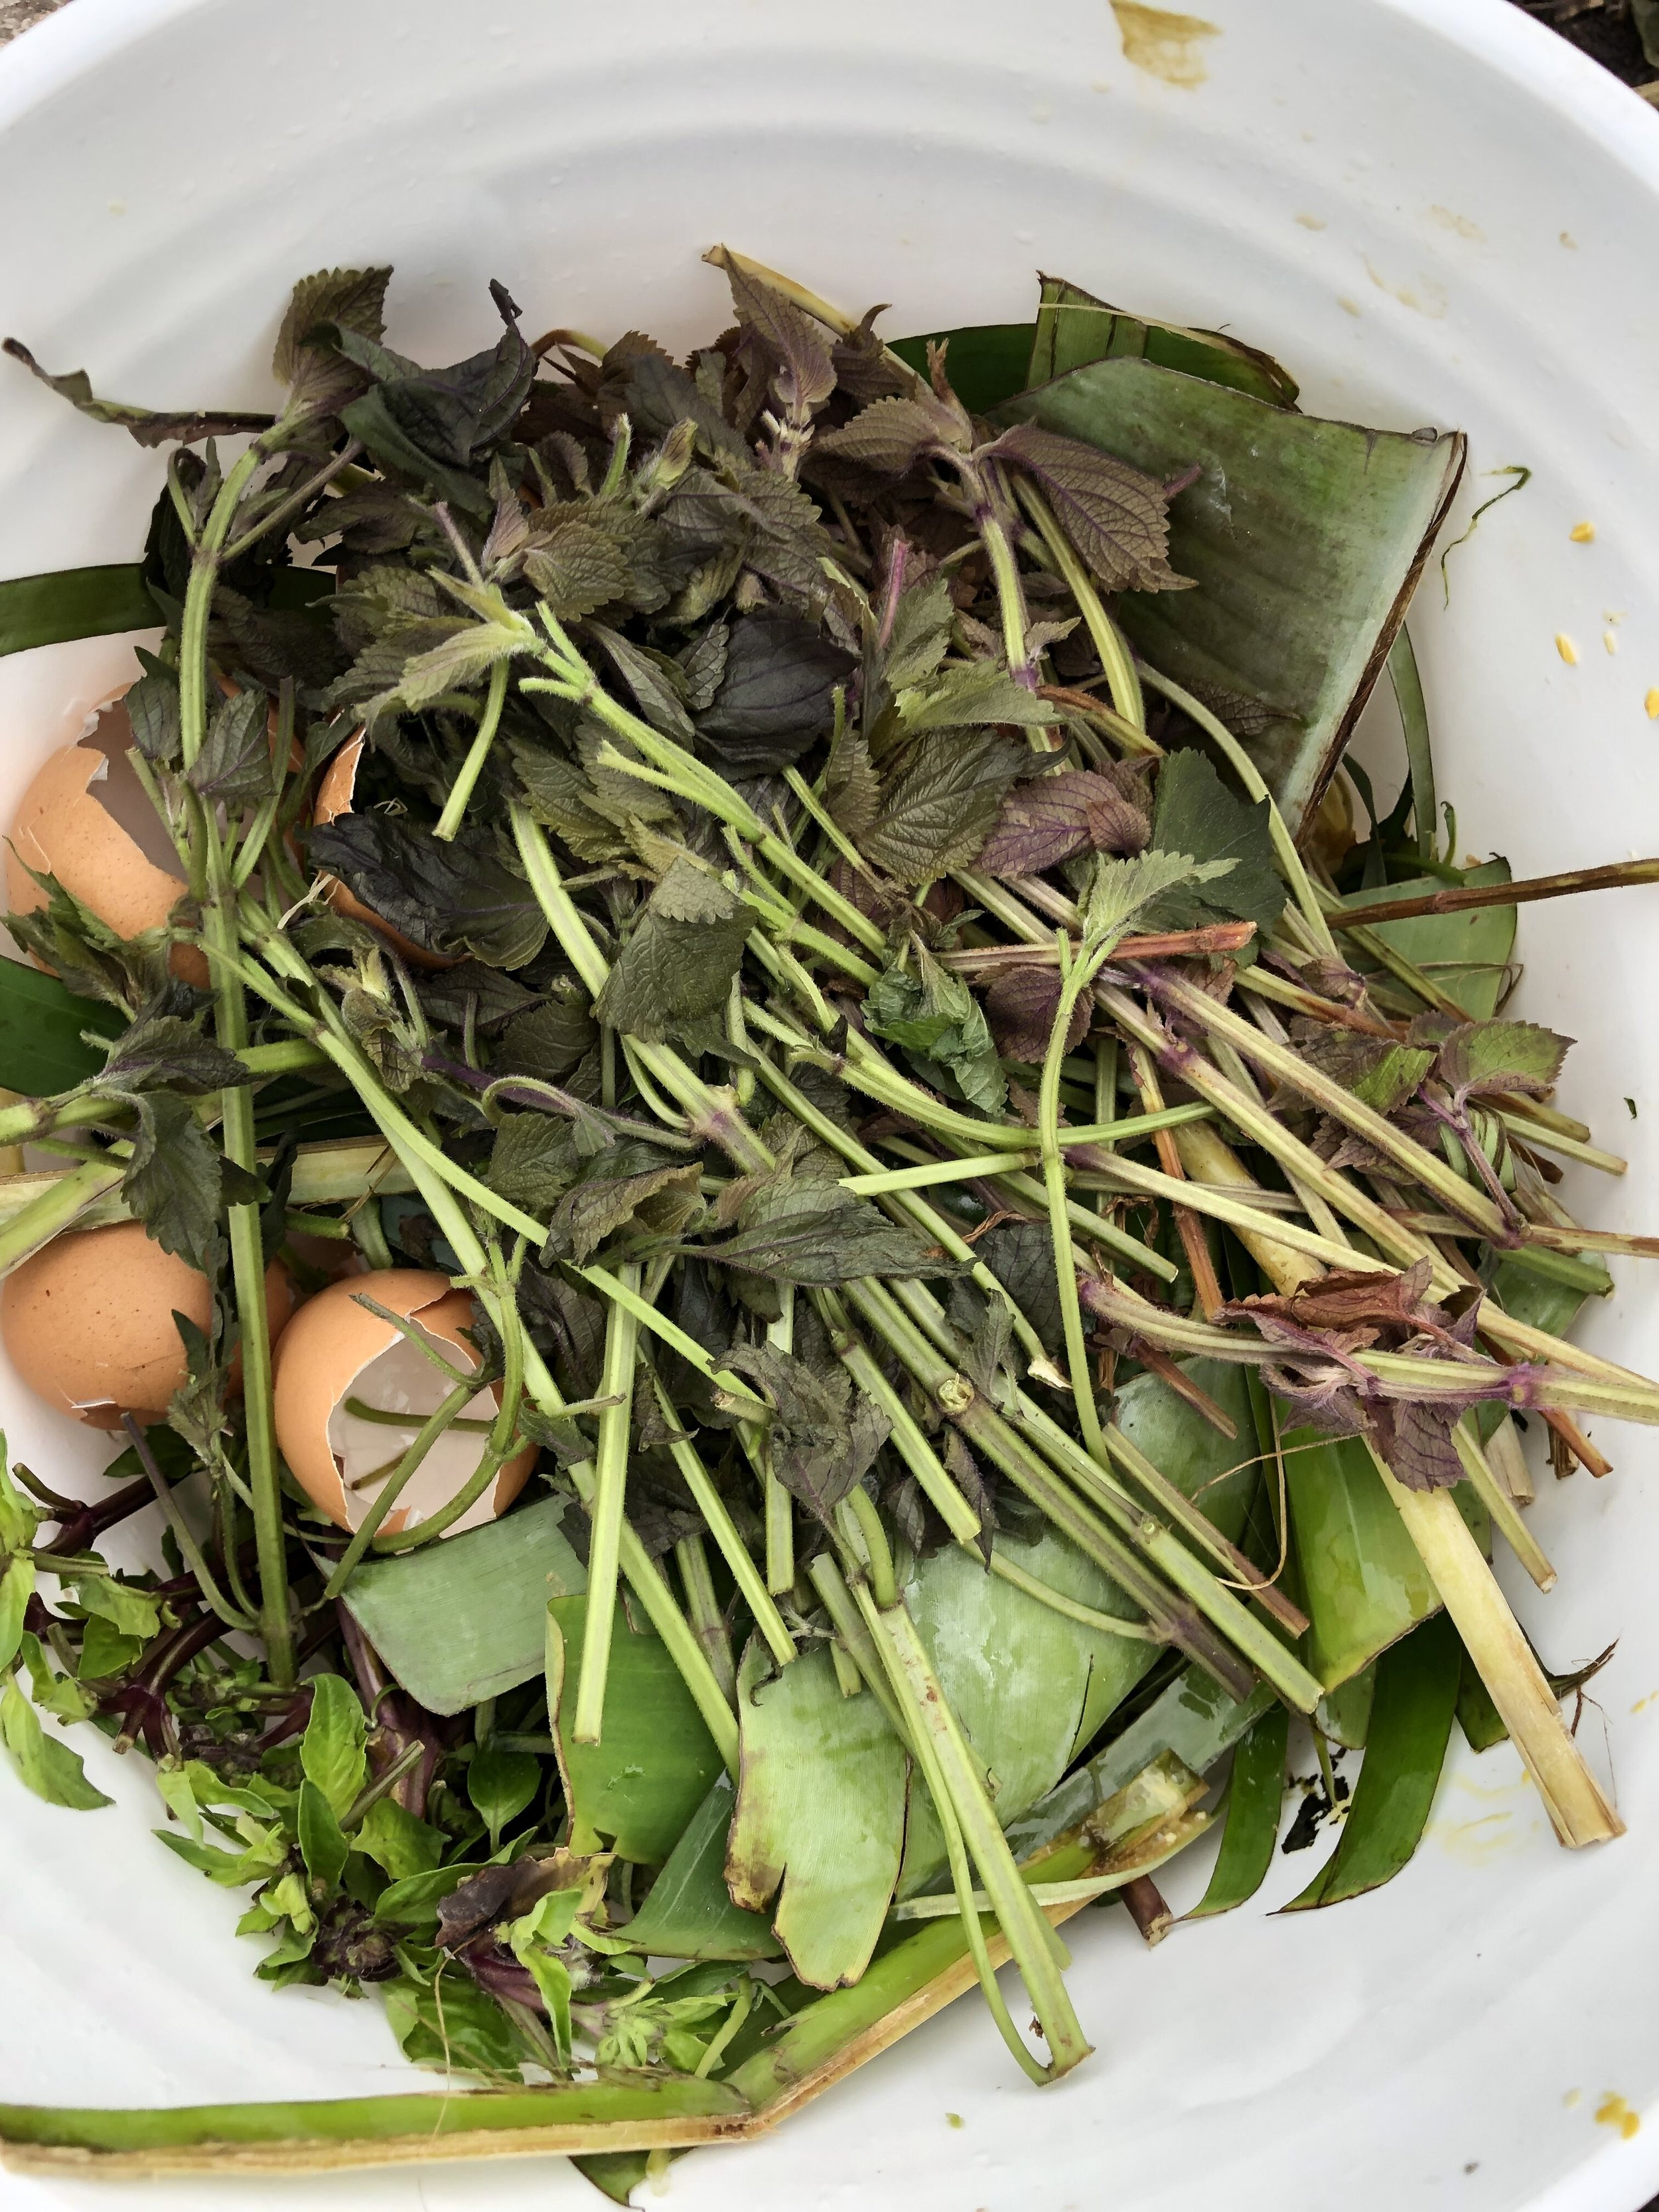 Dallas News - Turn Compost, which specializes in food waste, is also gearing up at the Dallas Farmers Market, where it has a booth. Find out more at turncompost.com.